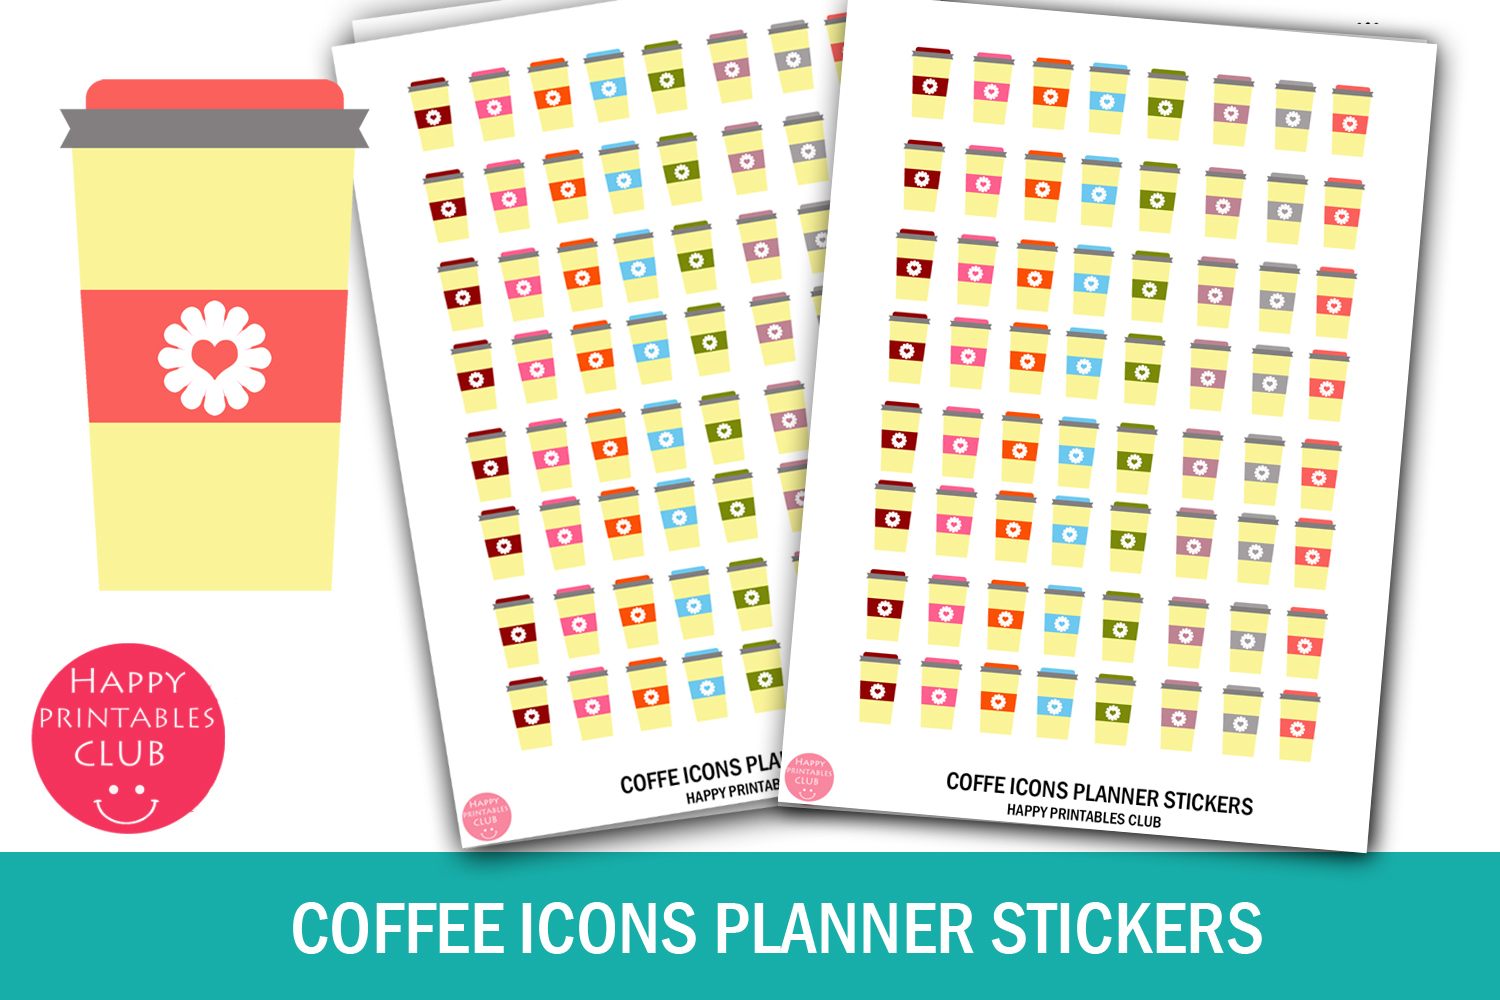 Download Free Coffee Icons Planner Stickers Coffee Graphic By Happy for Cricut Explore, Silhouette and other cutting machines.